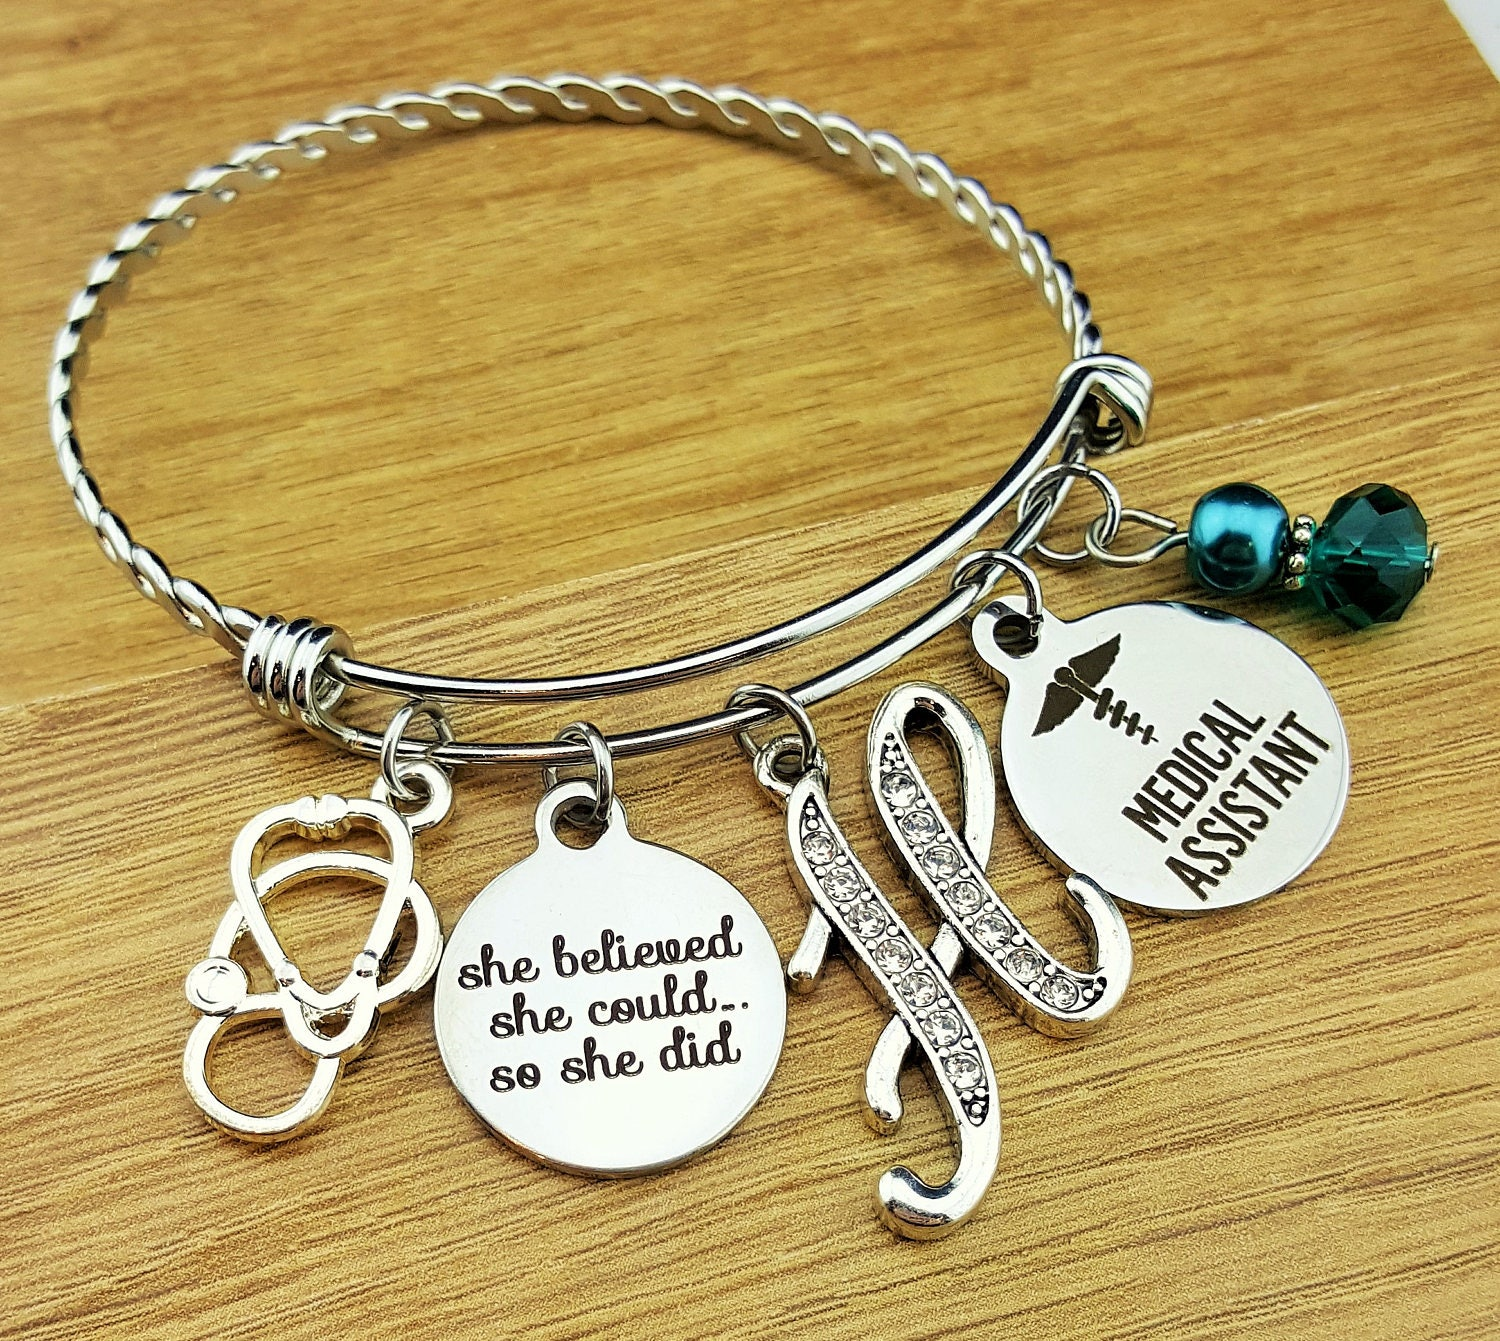 charm for all collections designs shop bracelets large dlk brac trio bracelet map graduation gift girls